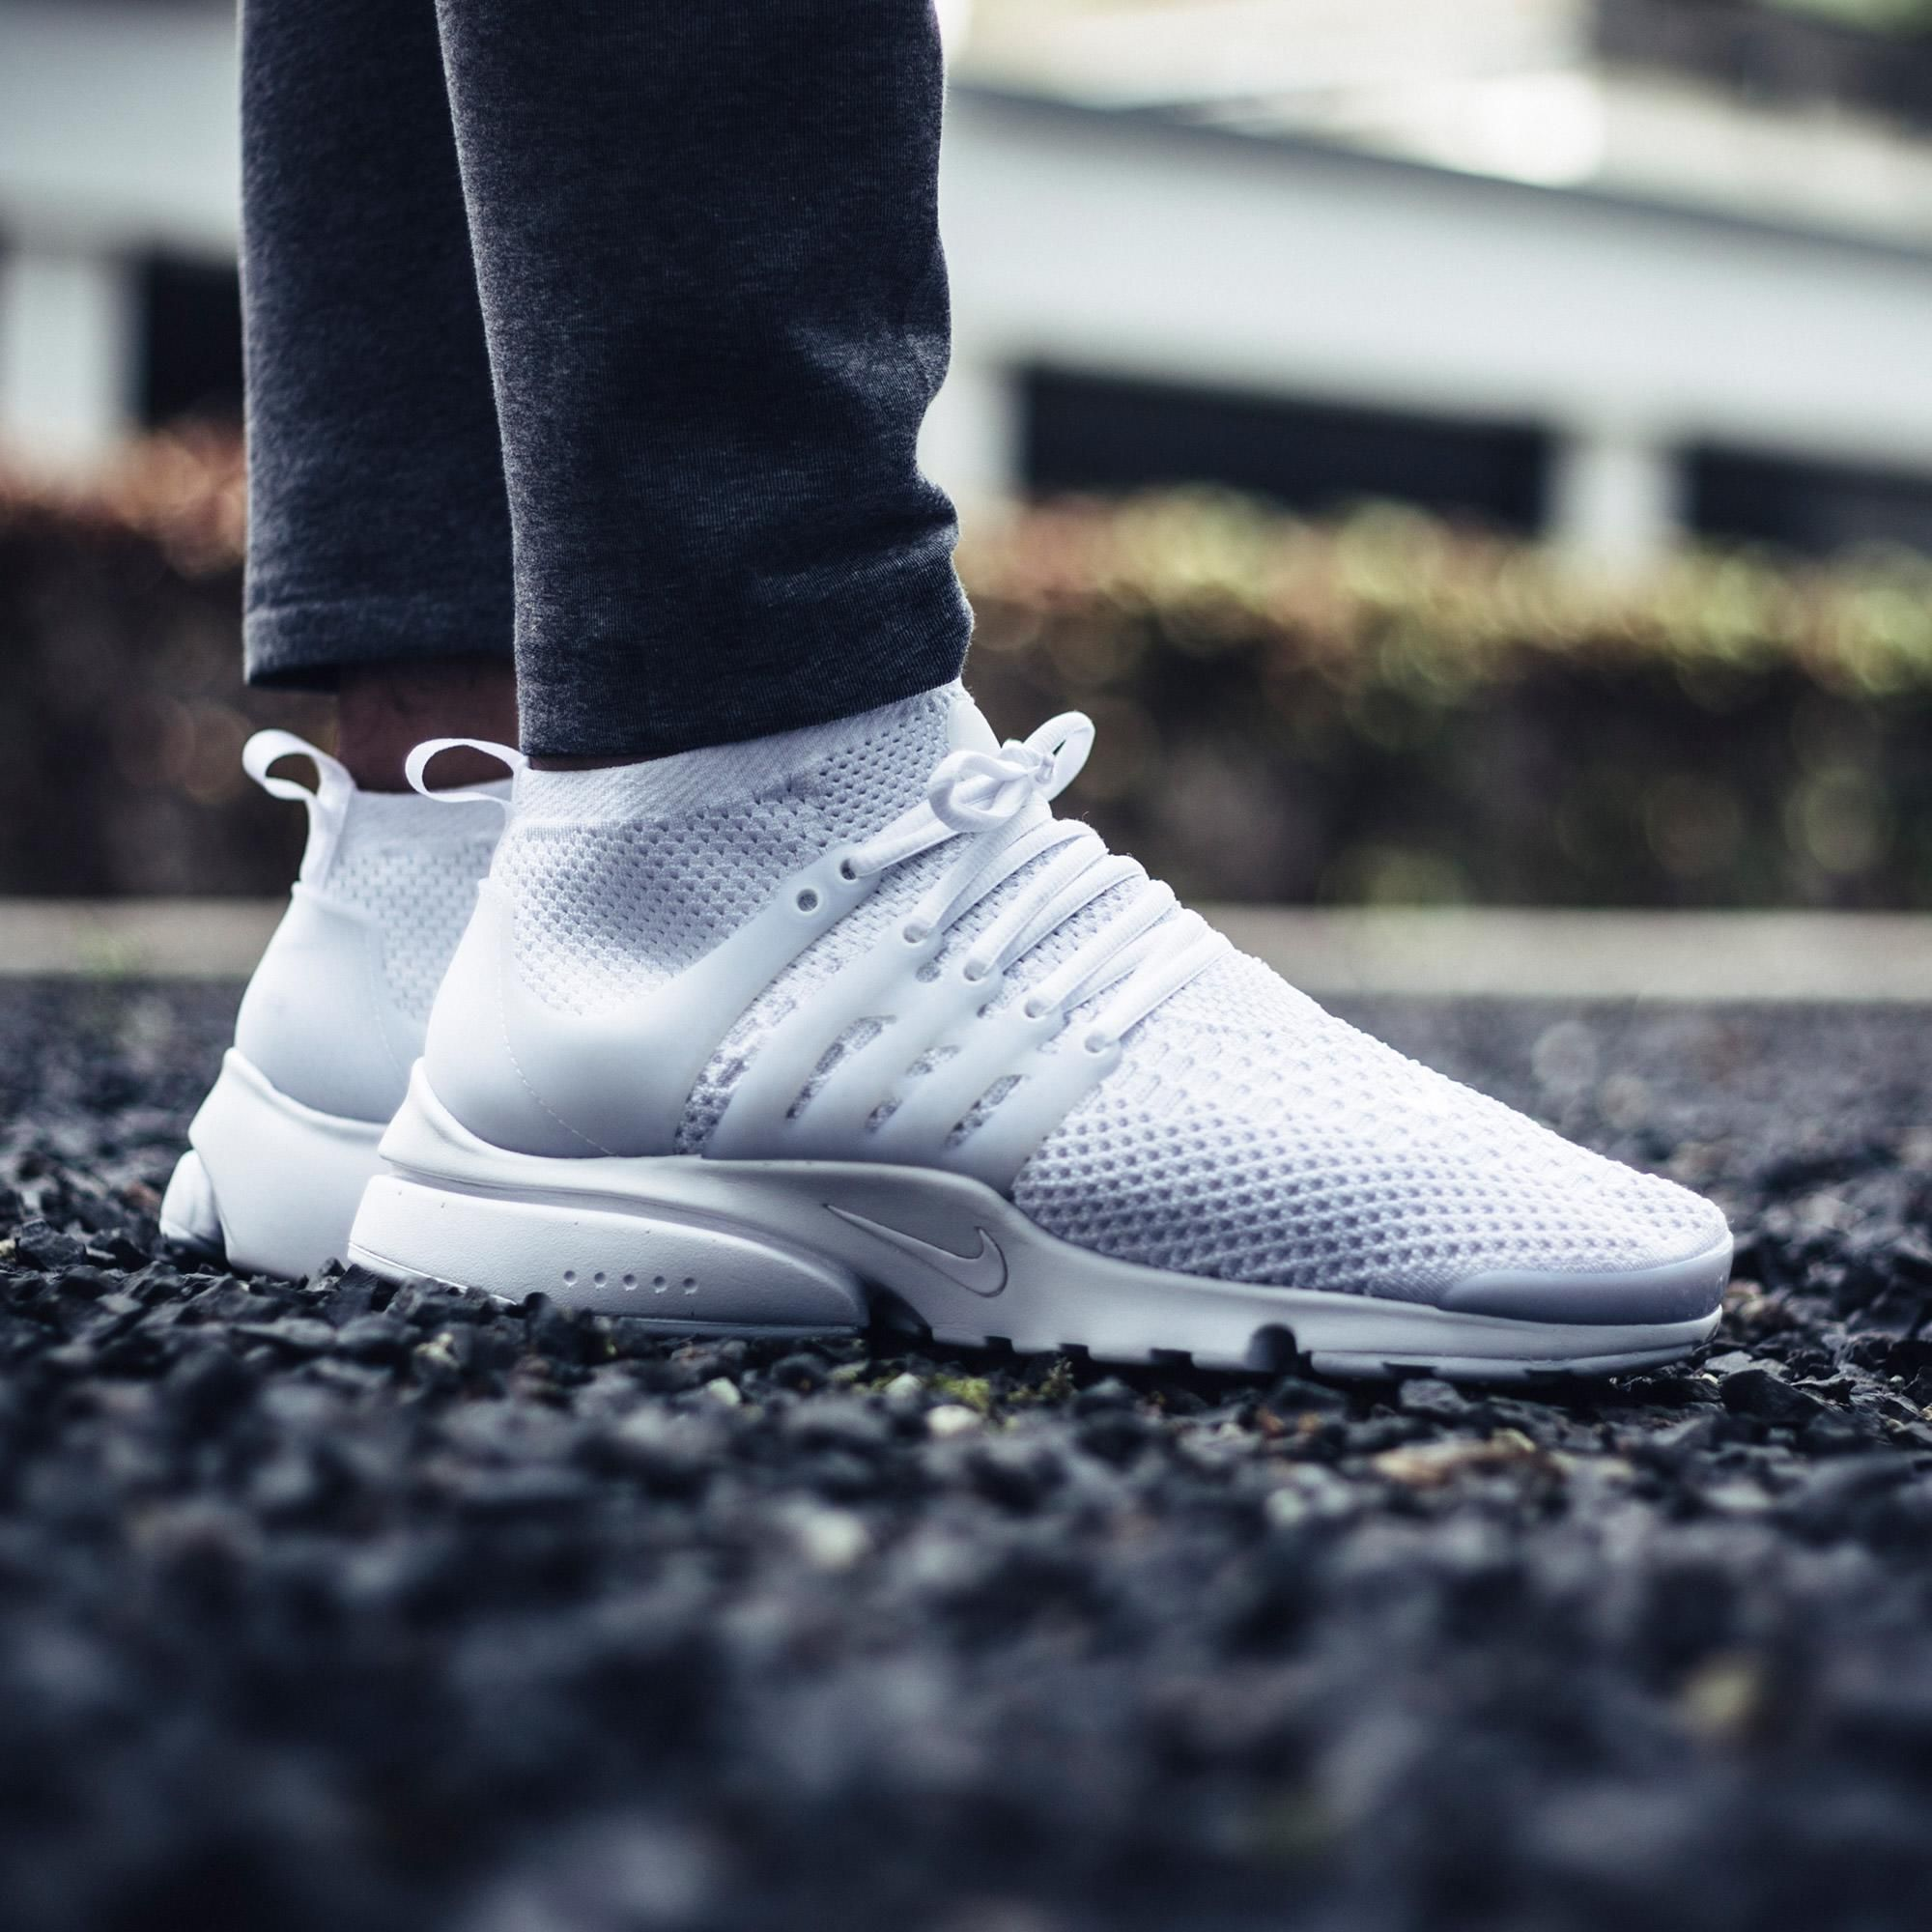 8cf1cb9bc45f2 ... An On-Feet Look At The Nike Air Presto Flyknit Ultra White ...